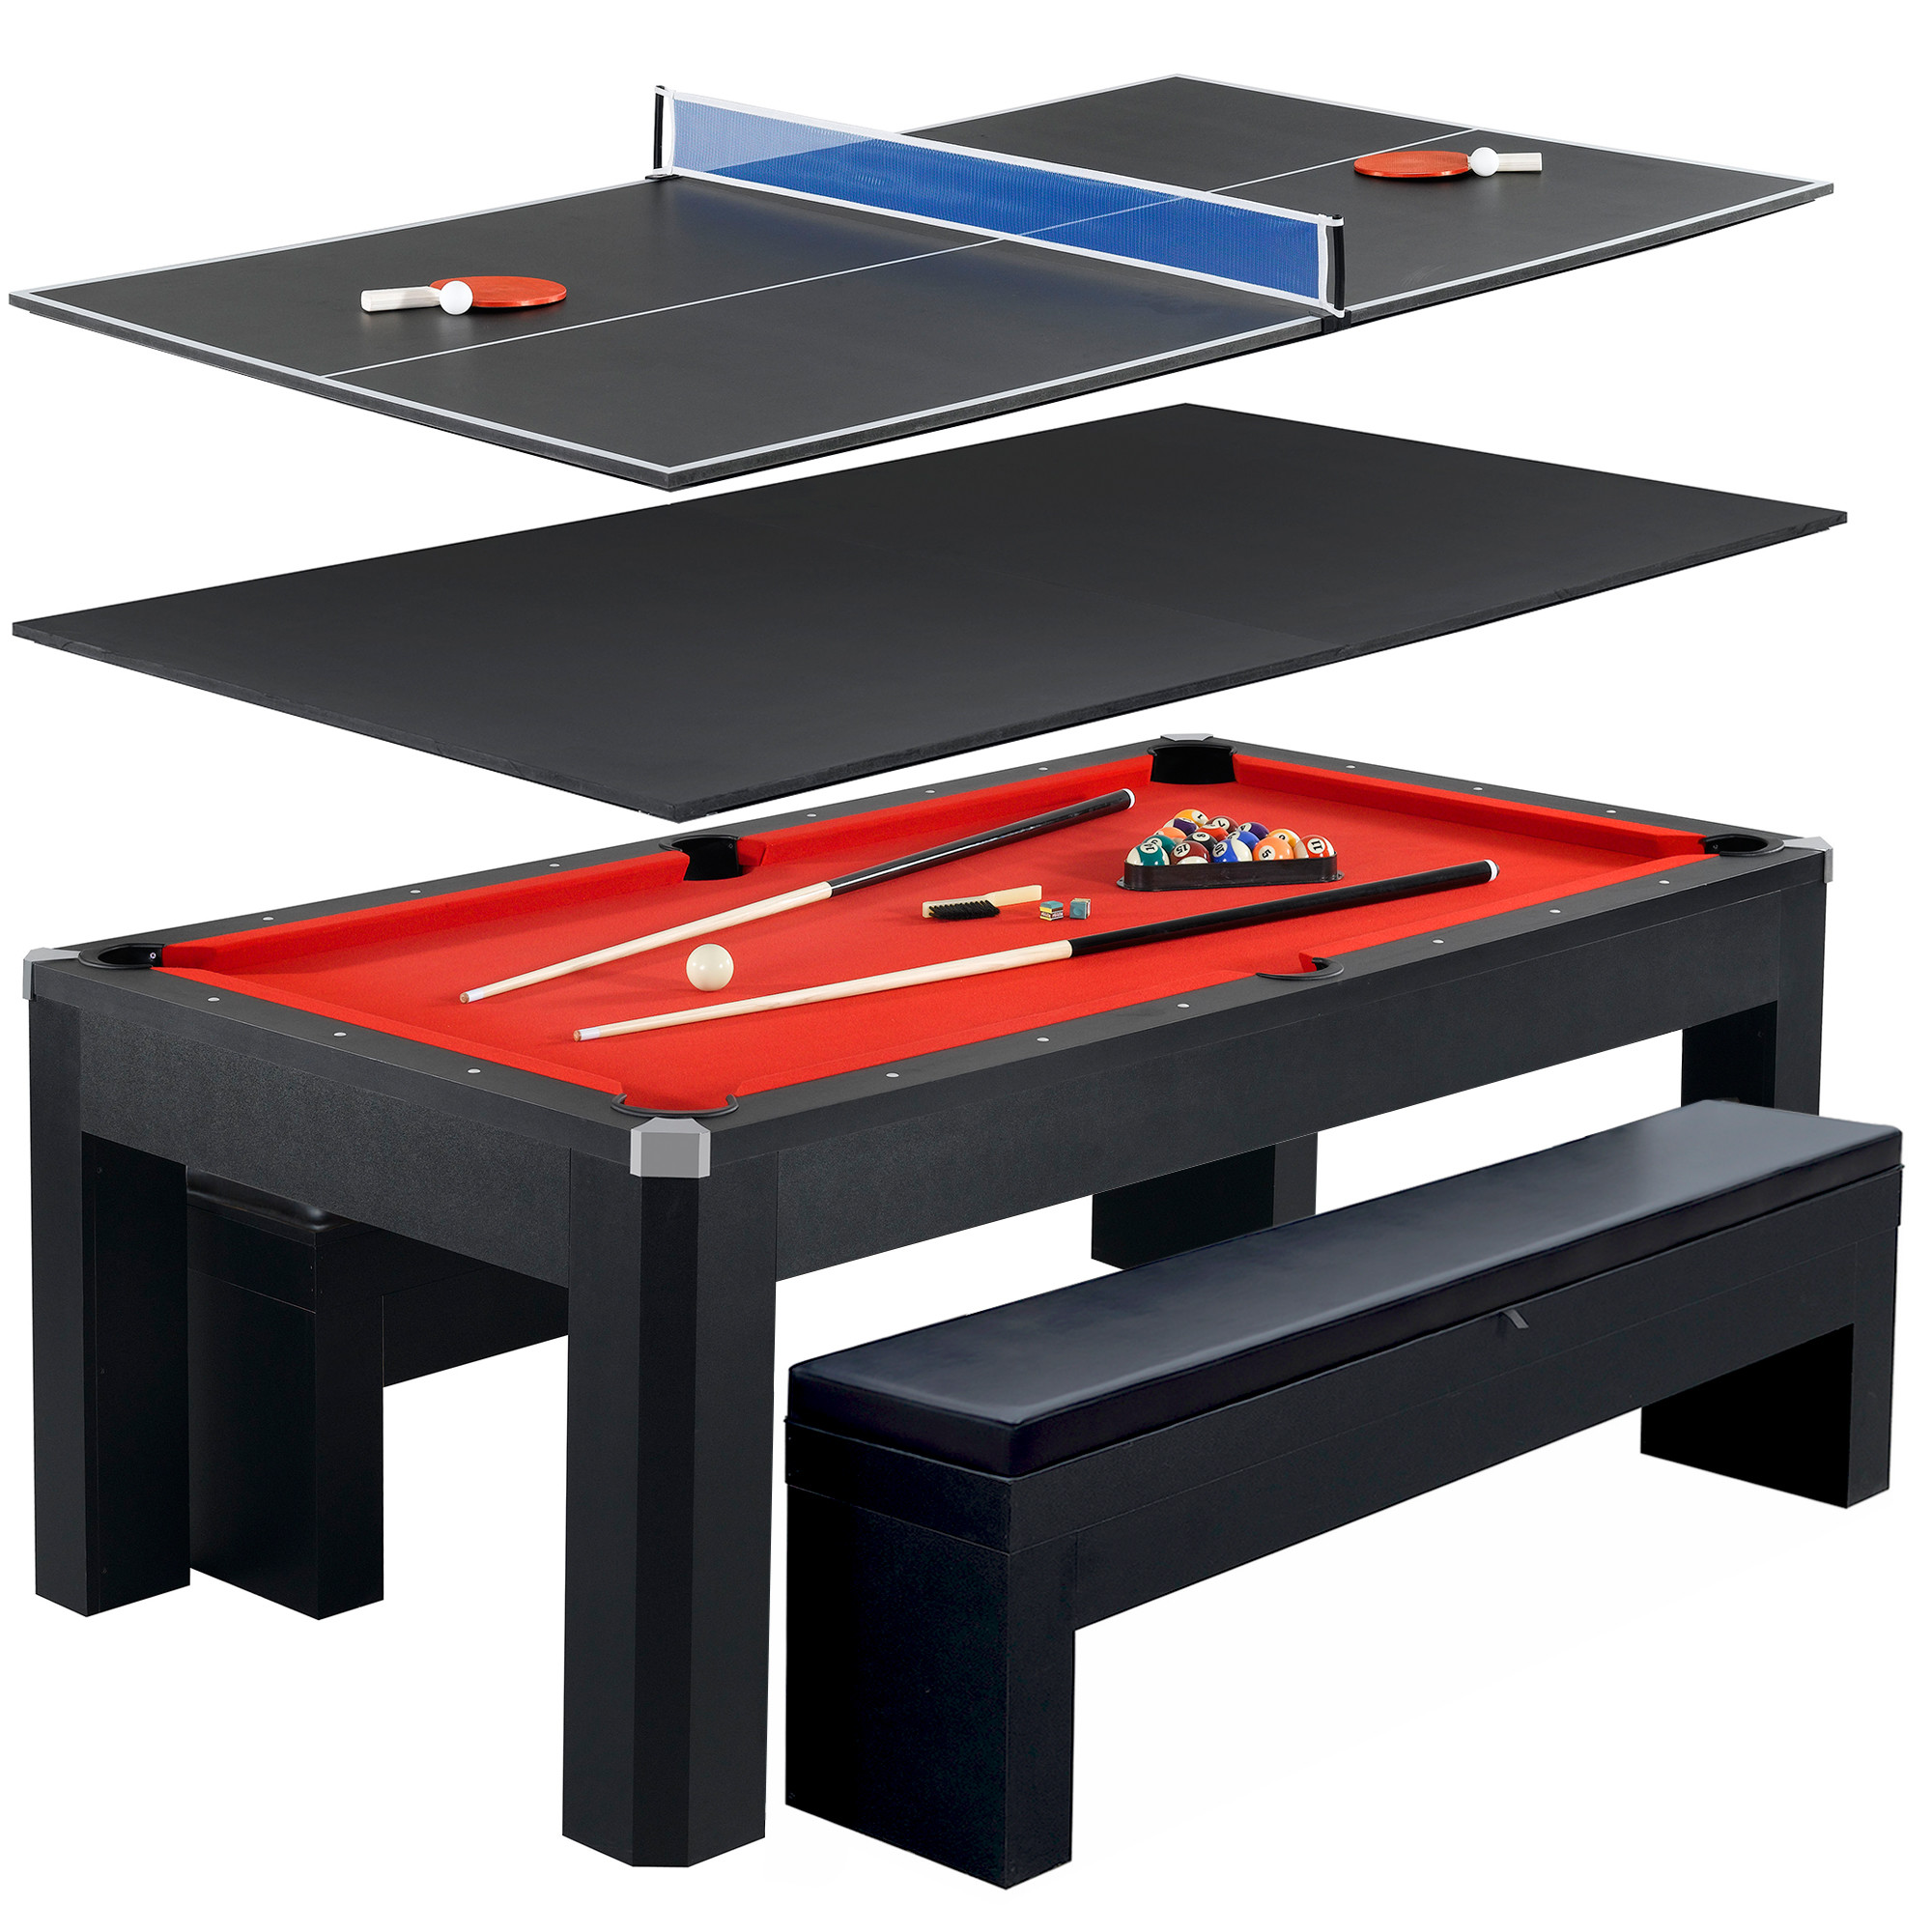 Hathaway Park Avenue Multi-Game Table with Pool, Table Tennis, Benches, 7-Foot